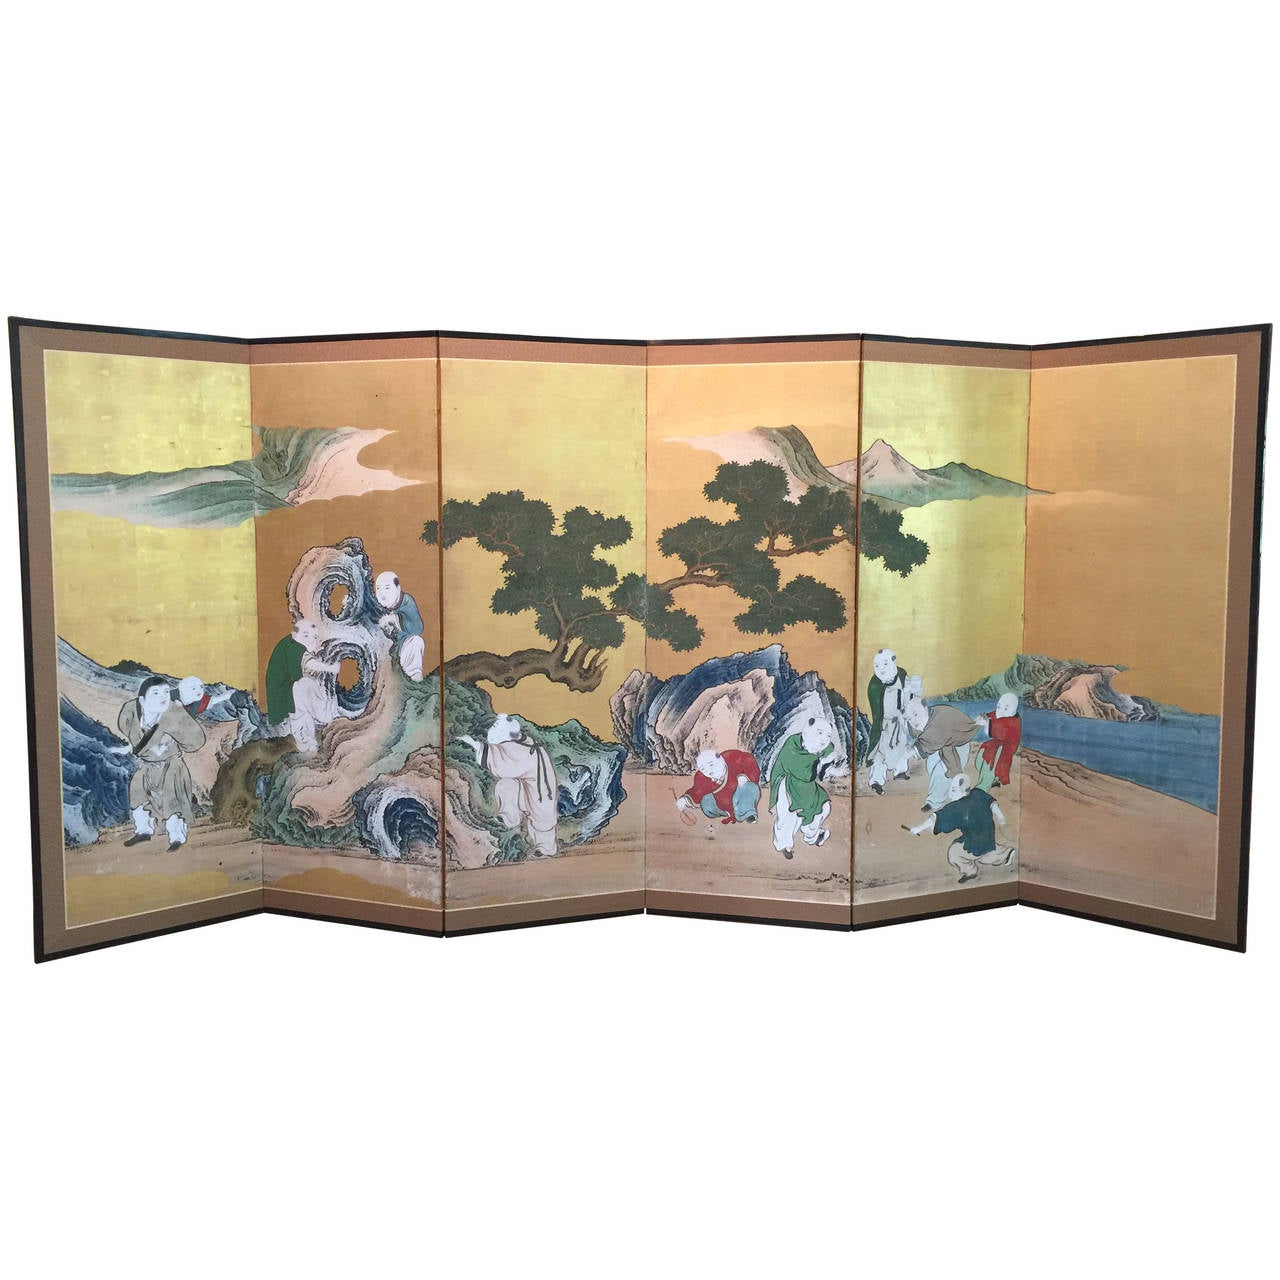 Japanese Six-Panel Screen with Children